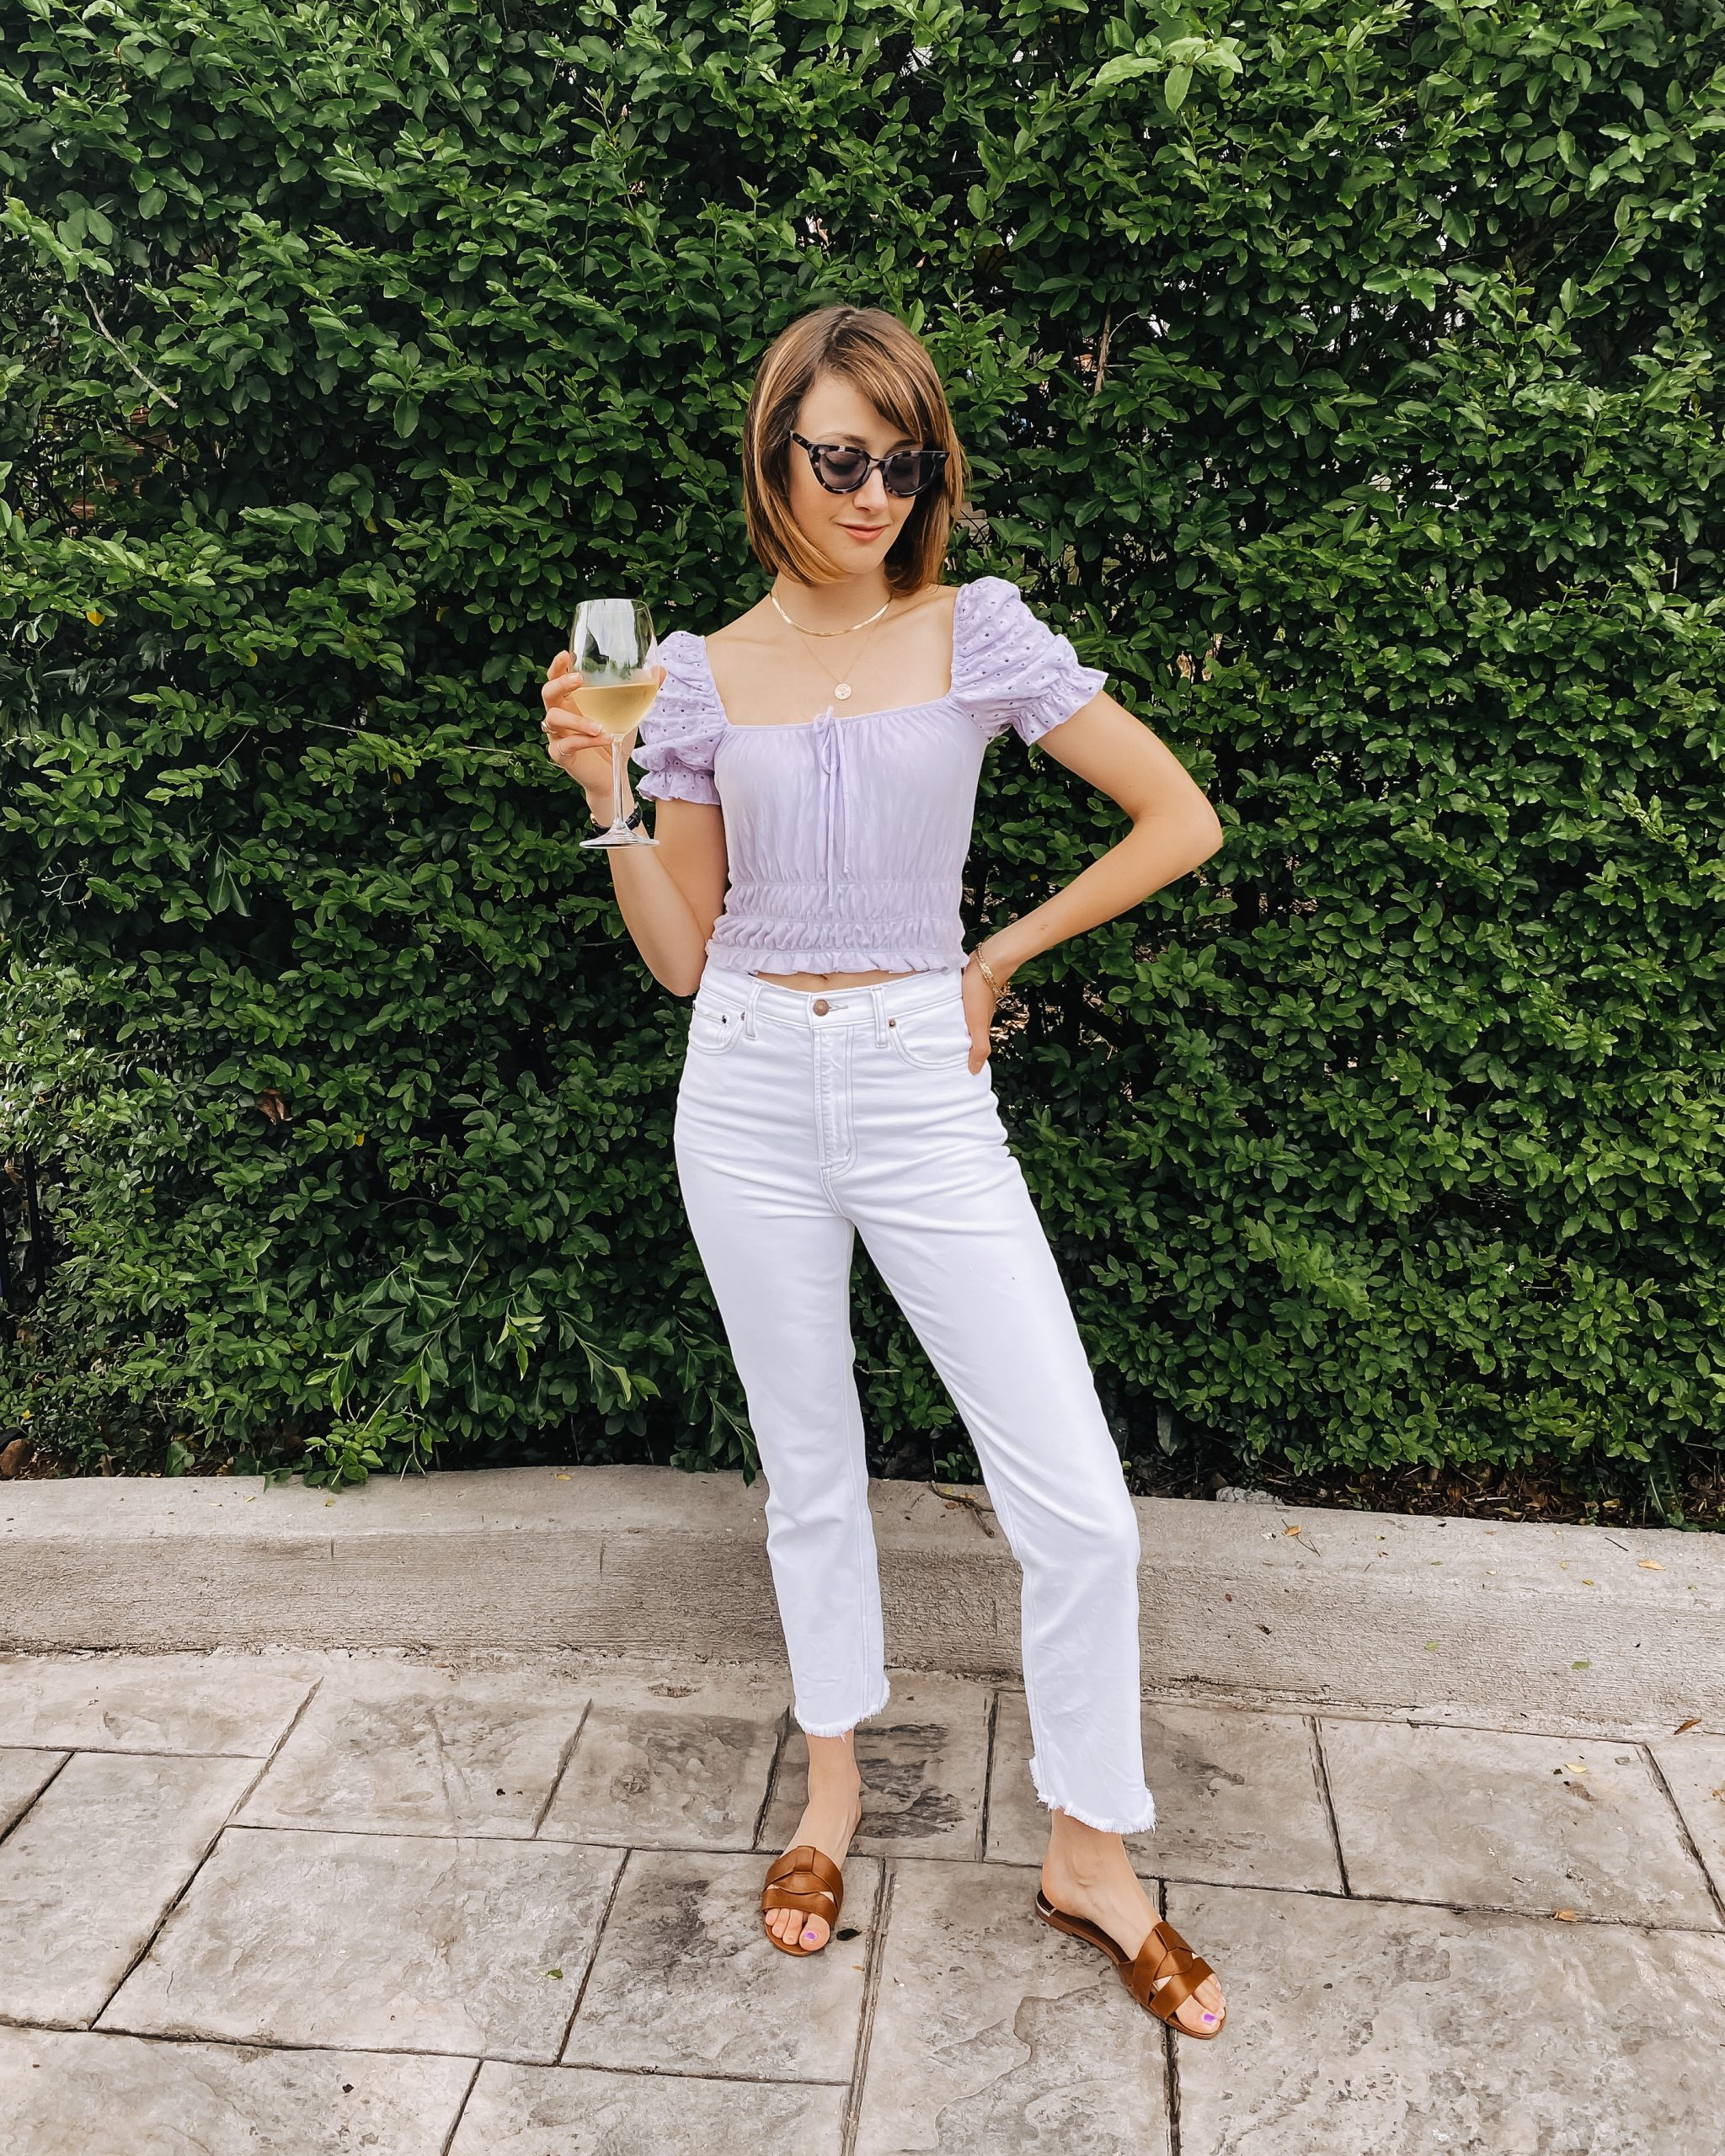 backyard casual outfit white jeans